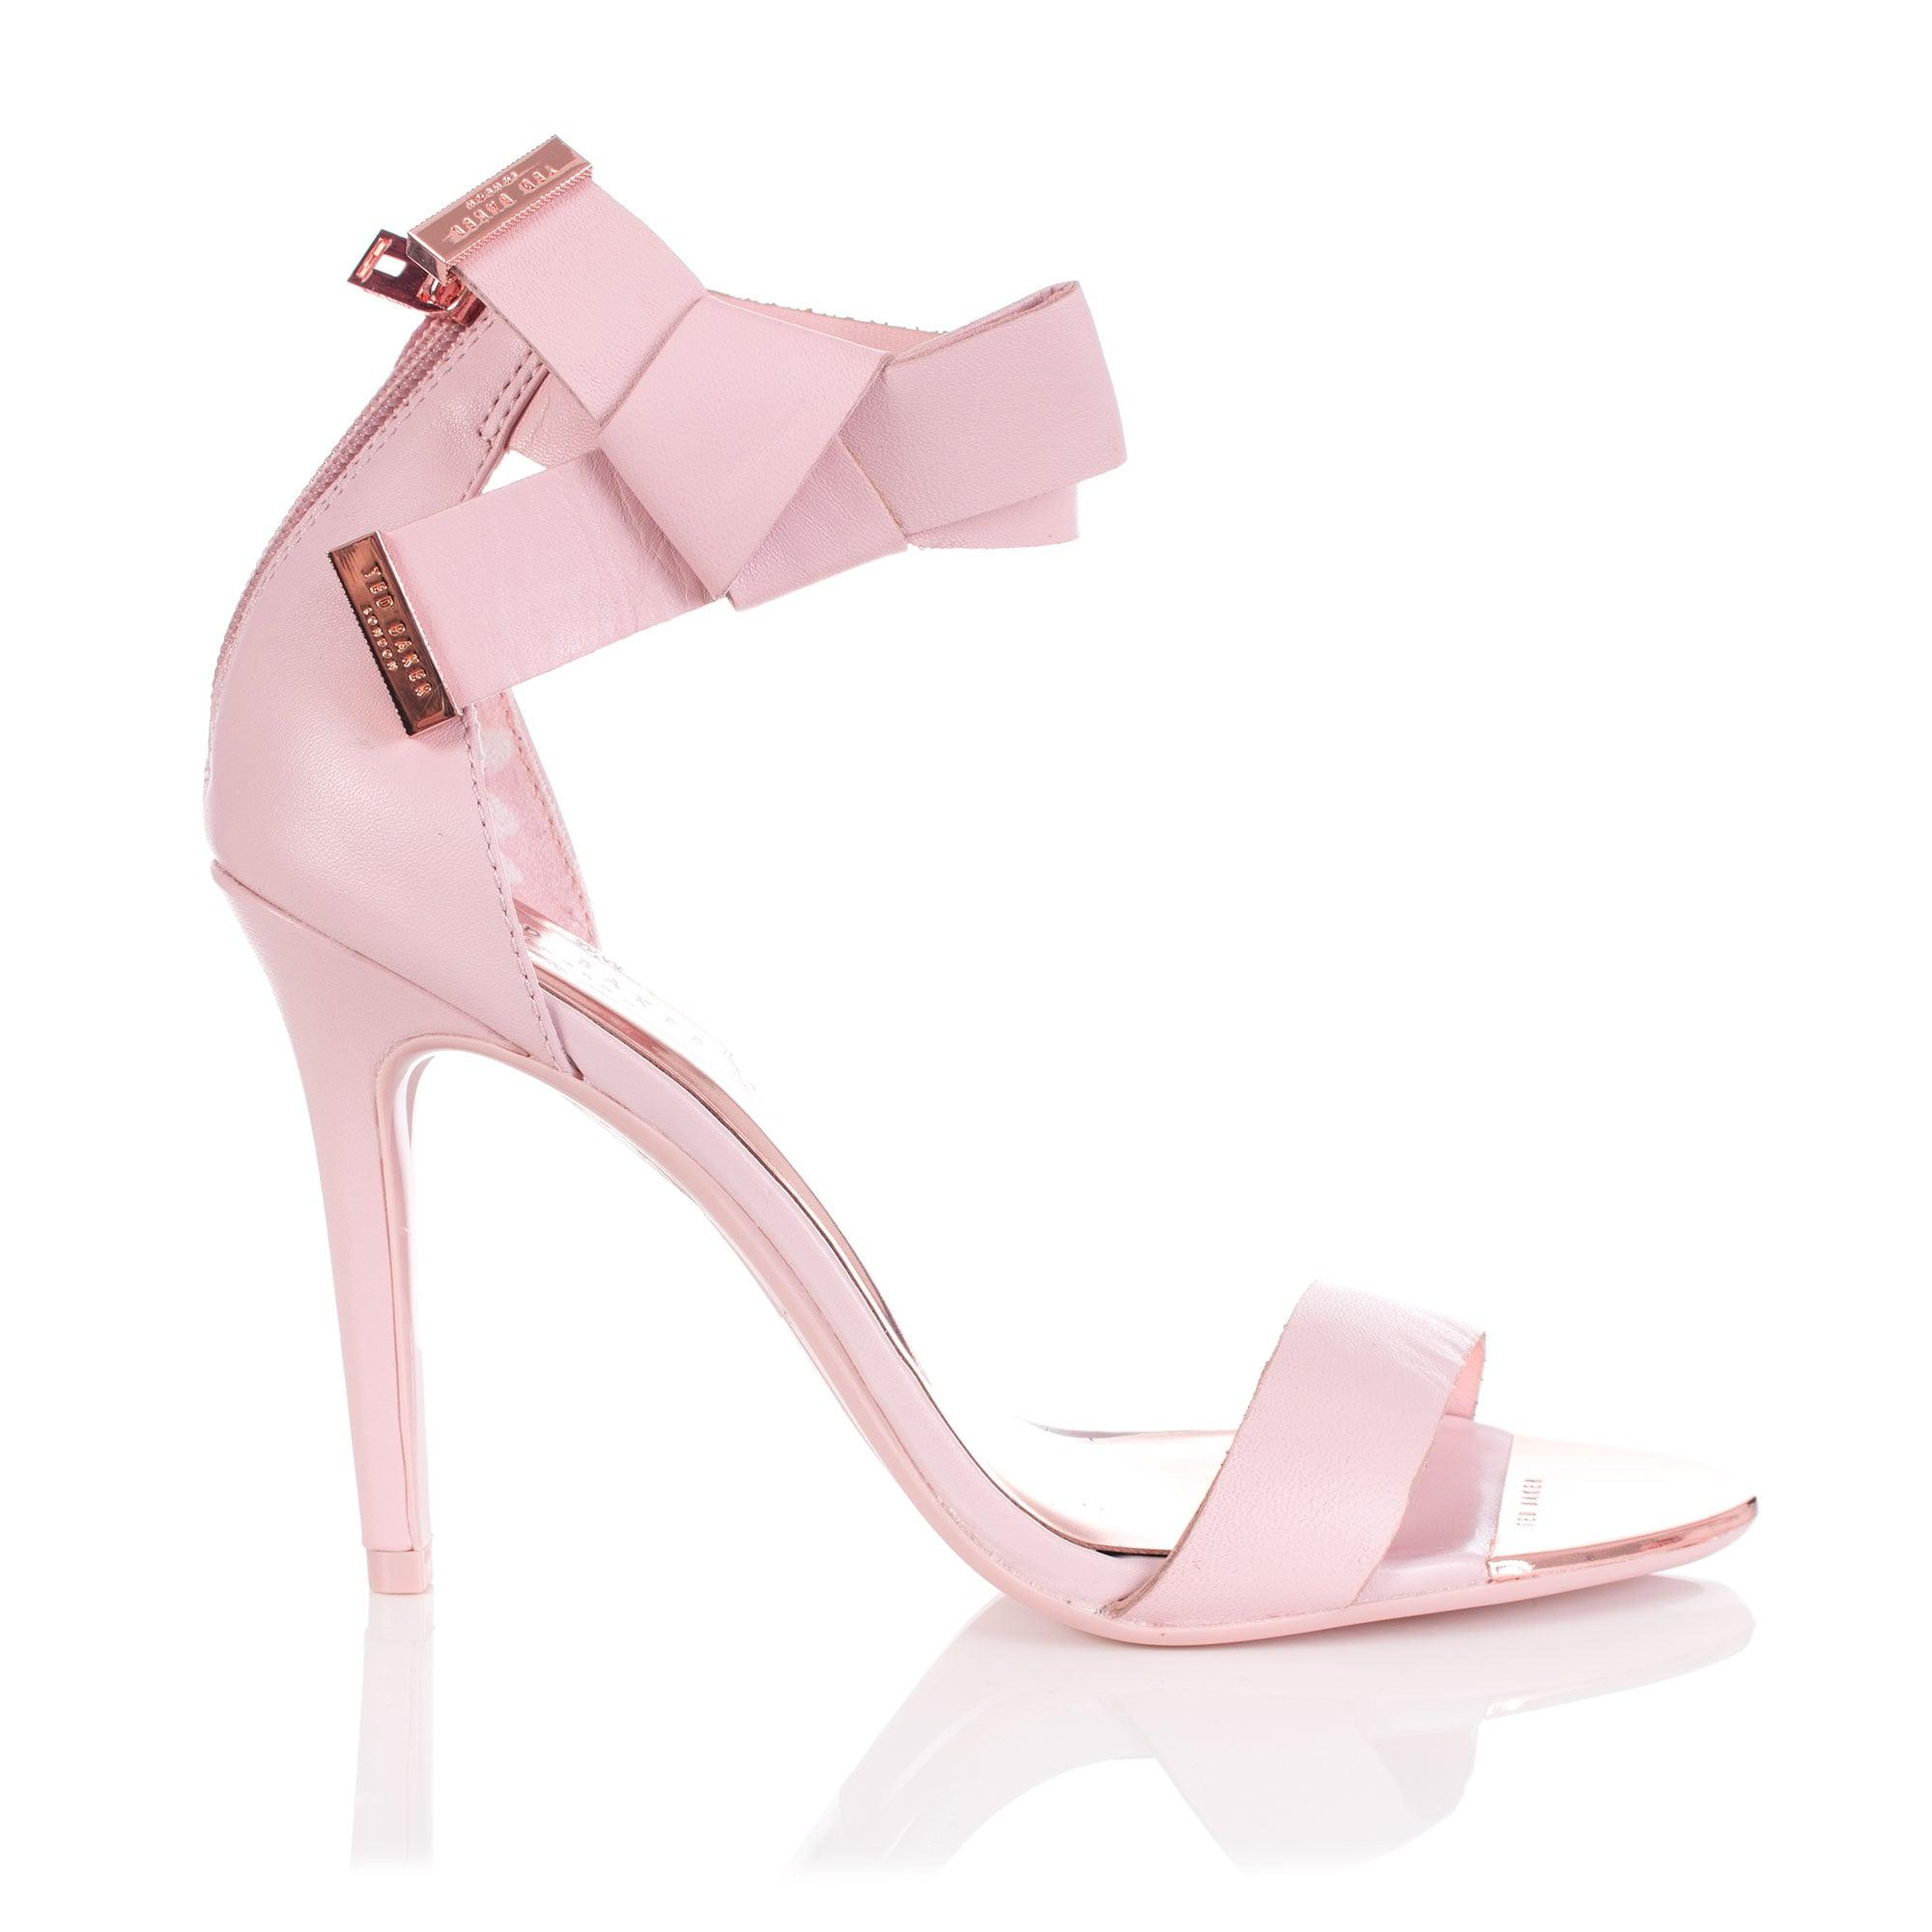 e30b8a4c7 Ted Baker Saphrun Knotted Bow Leather Sandal in Pink - Lyst